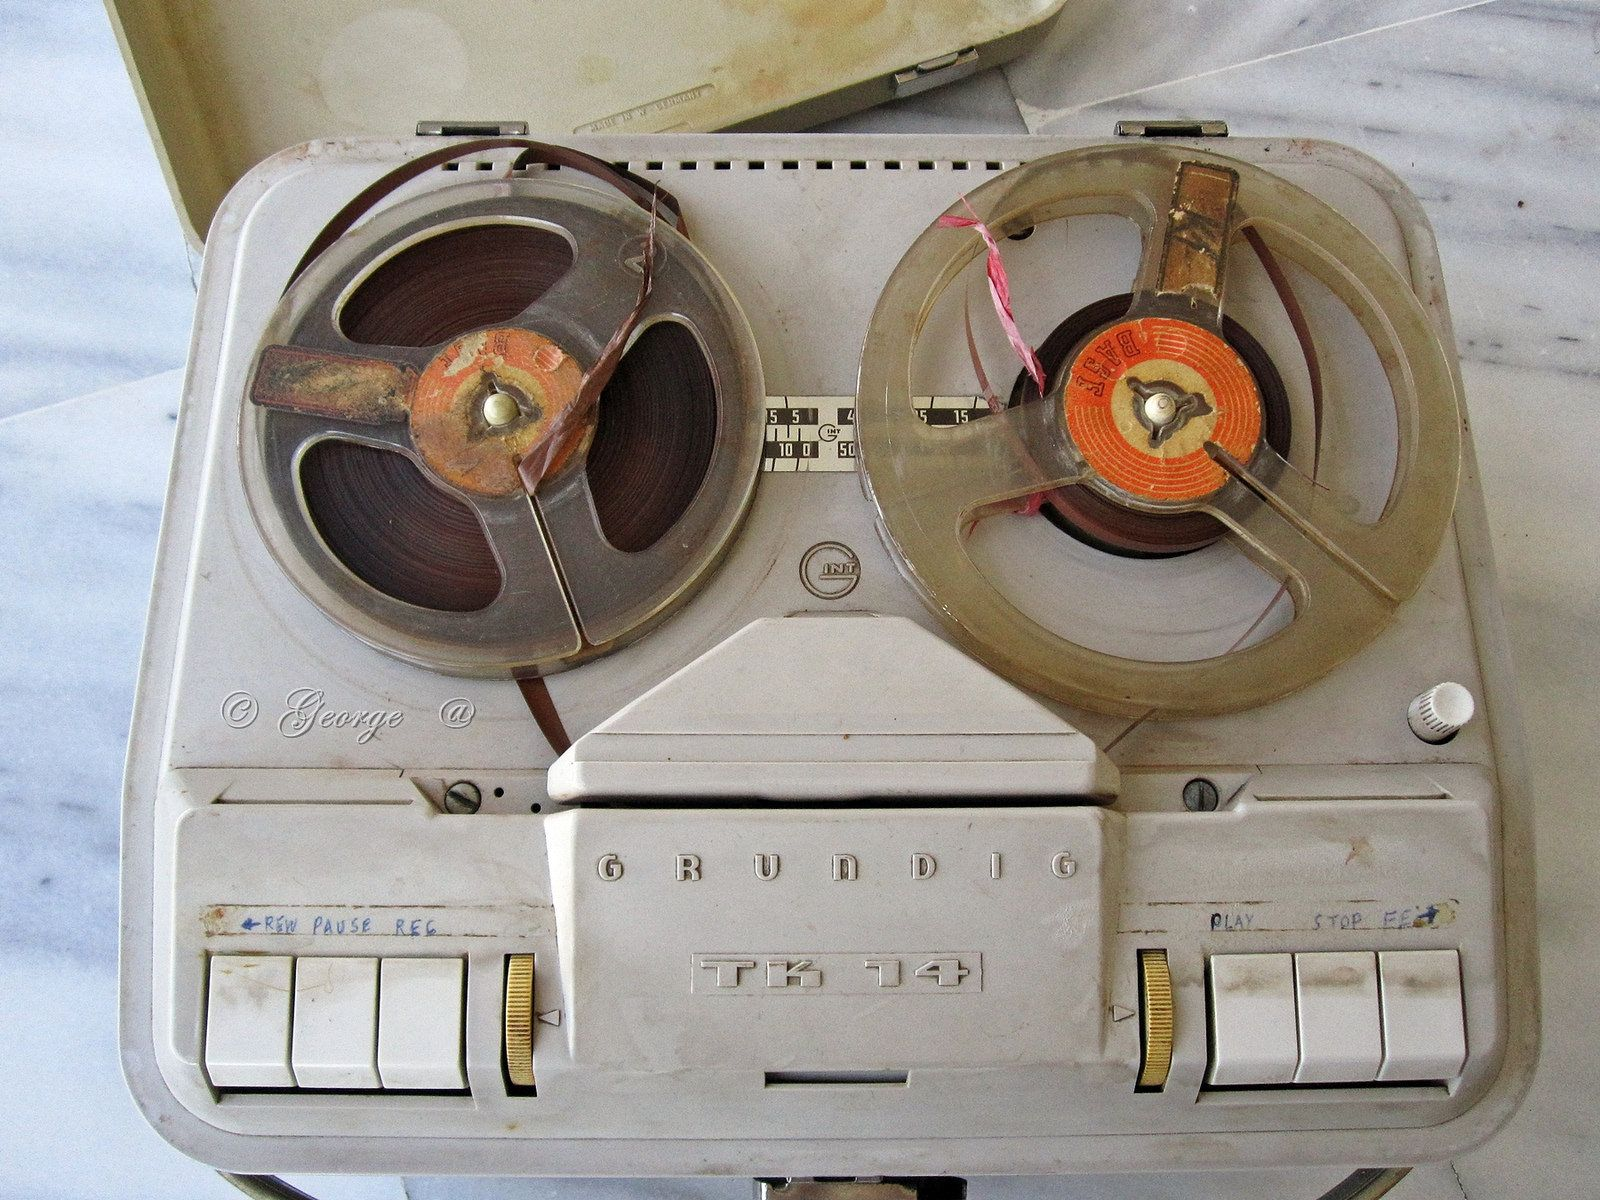 Grundig TK14 restored tube tape recorder from 1961-63 | Tape recorder, High  school memories, School memories